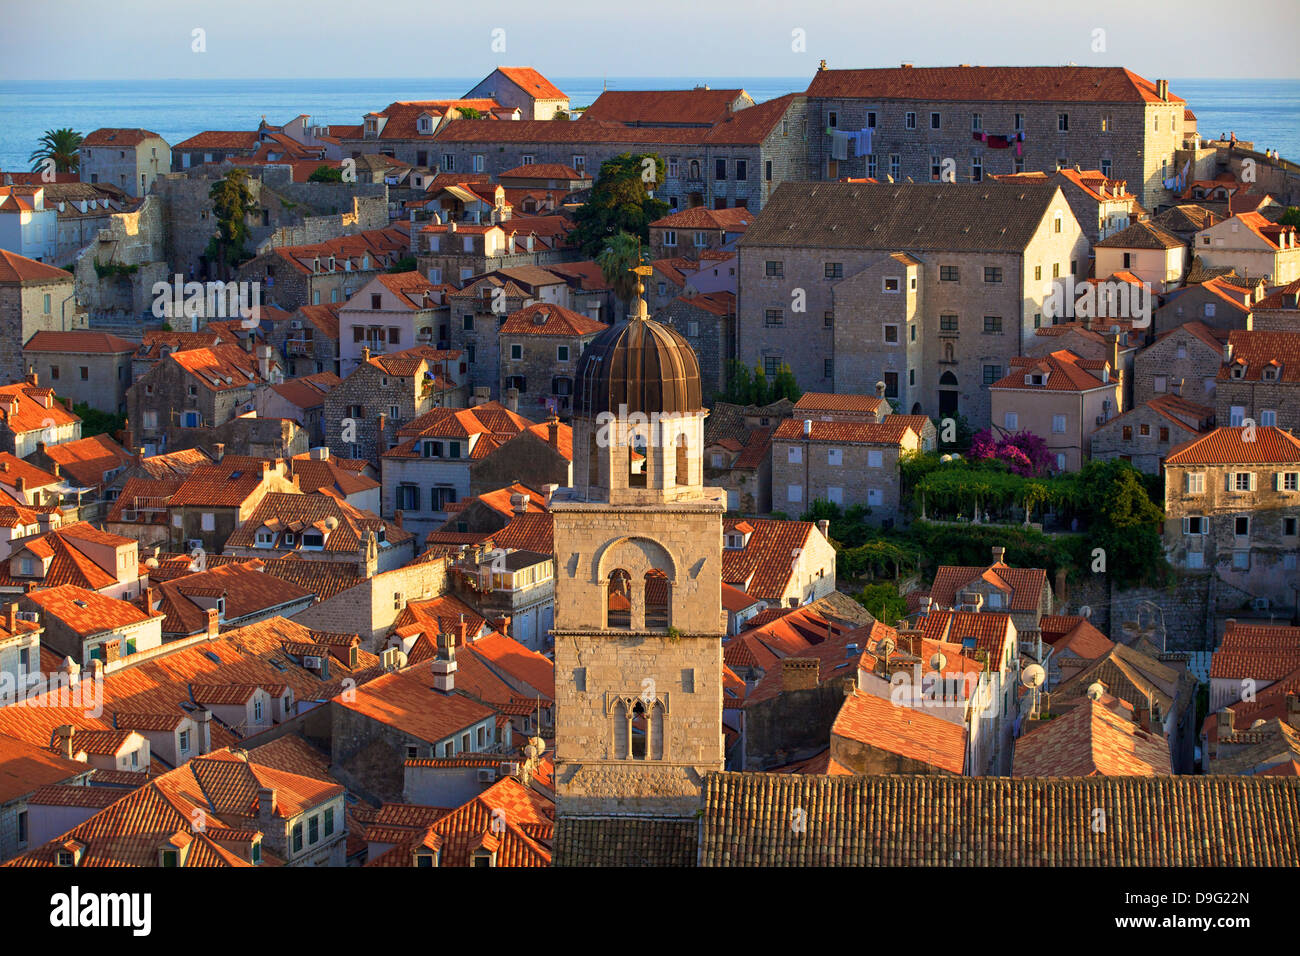 View over Old City with Franciscan Monastery, UNESCO World Heritage Site, Dubrovnik, Croatia - Stock Image